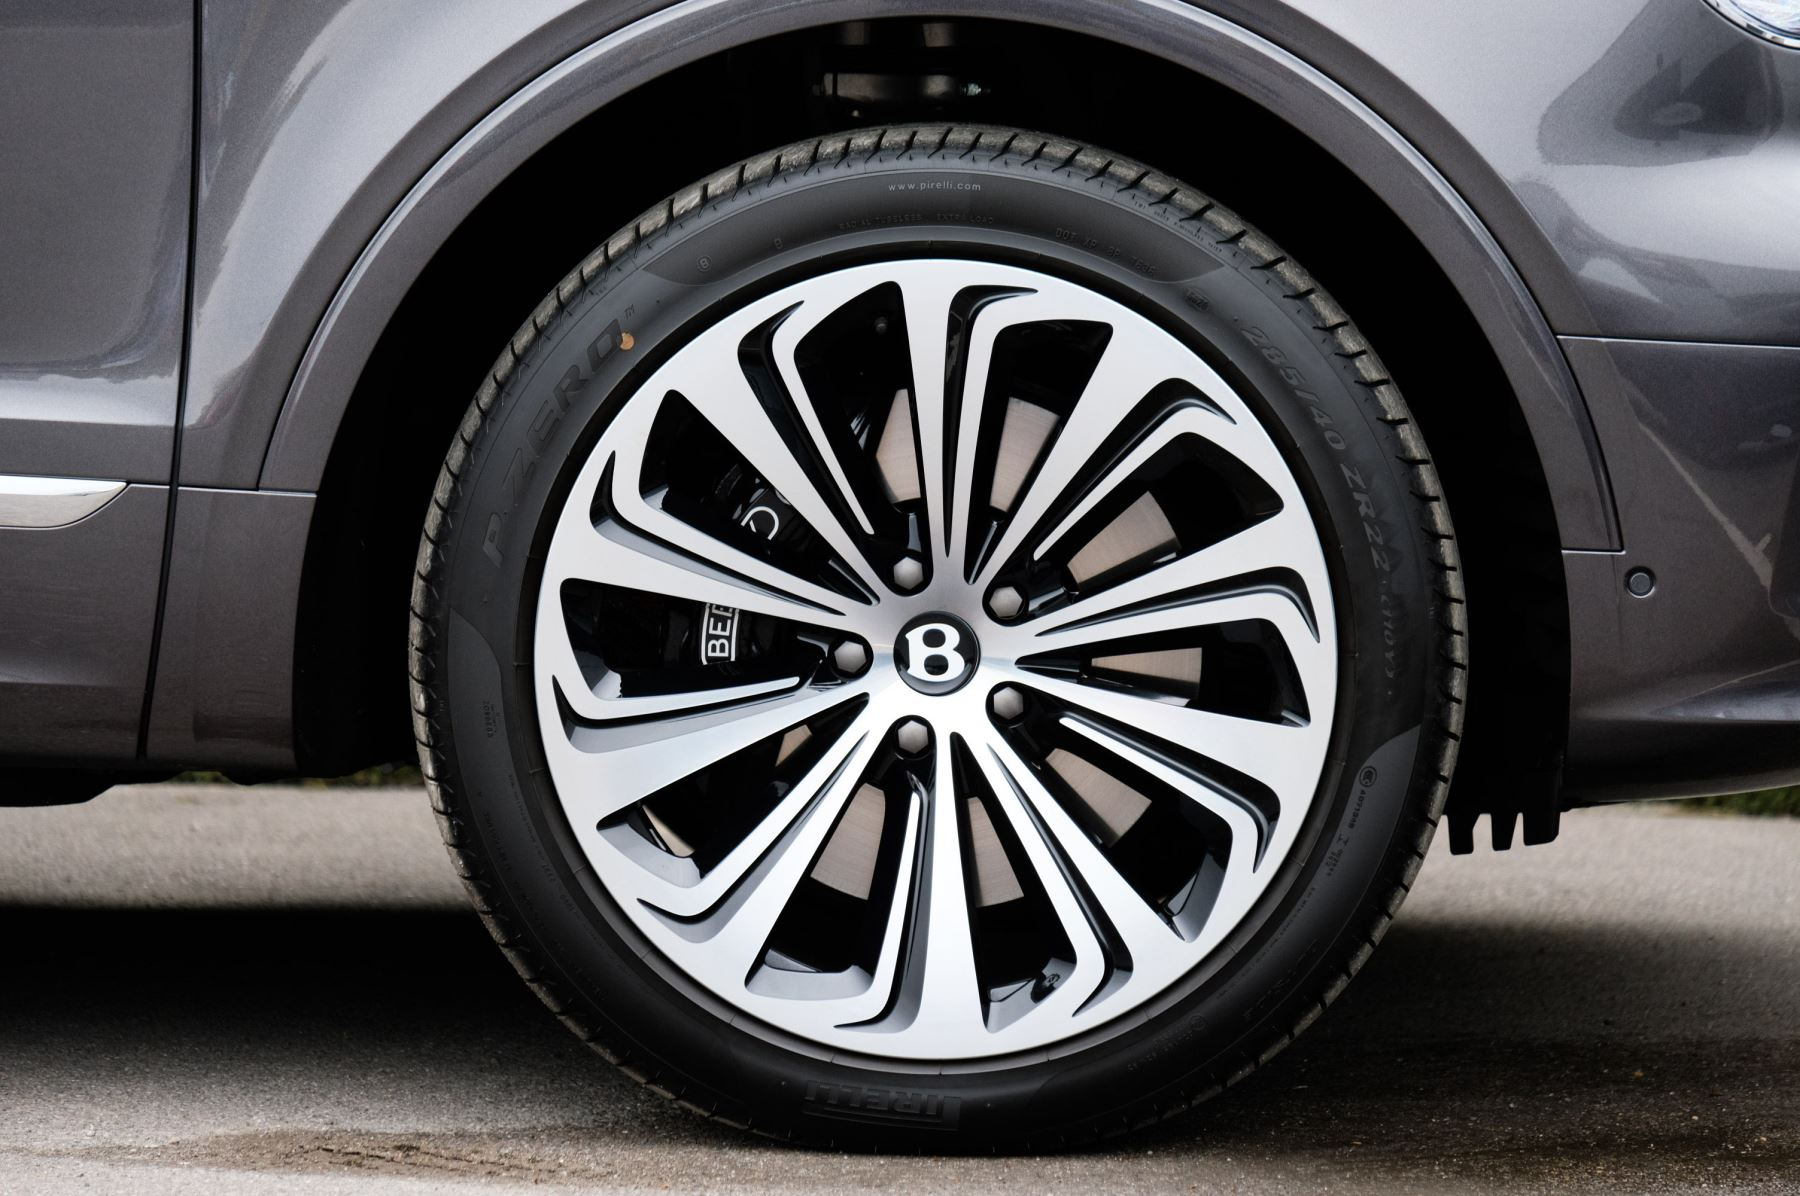 Bentley Bentayga 4.0 V8 5dr [4 Seat] - First Edition - All Terrain Specification image 9